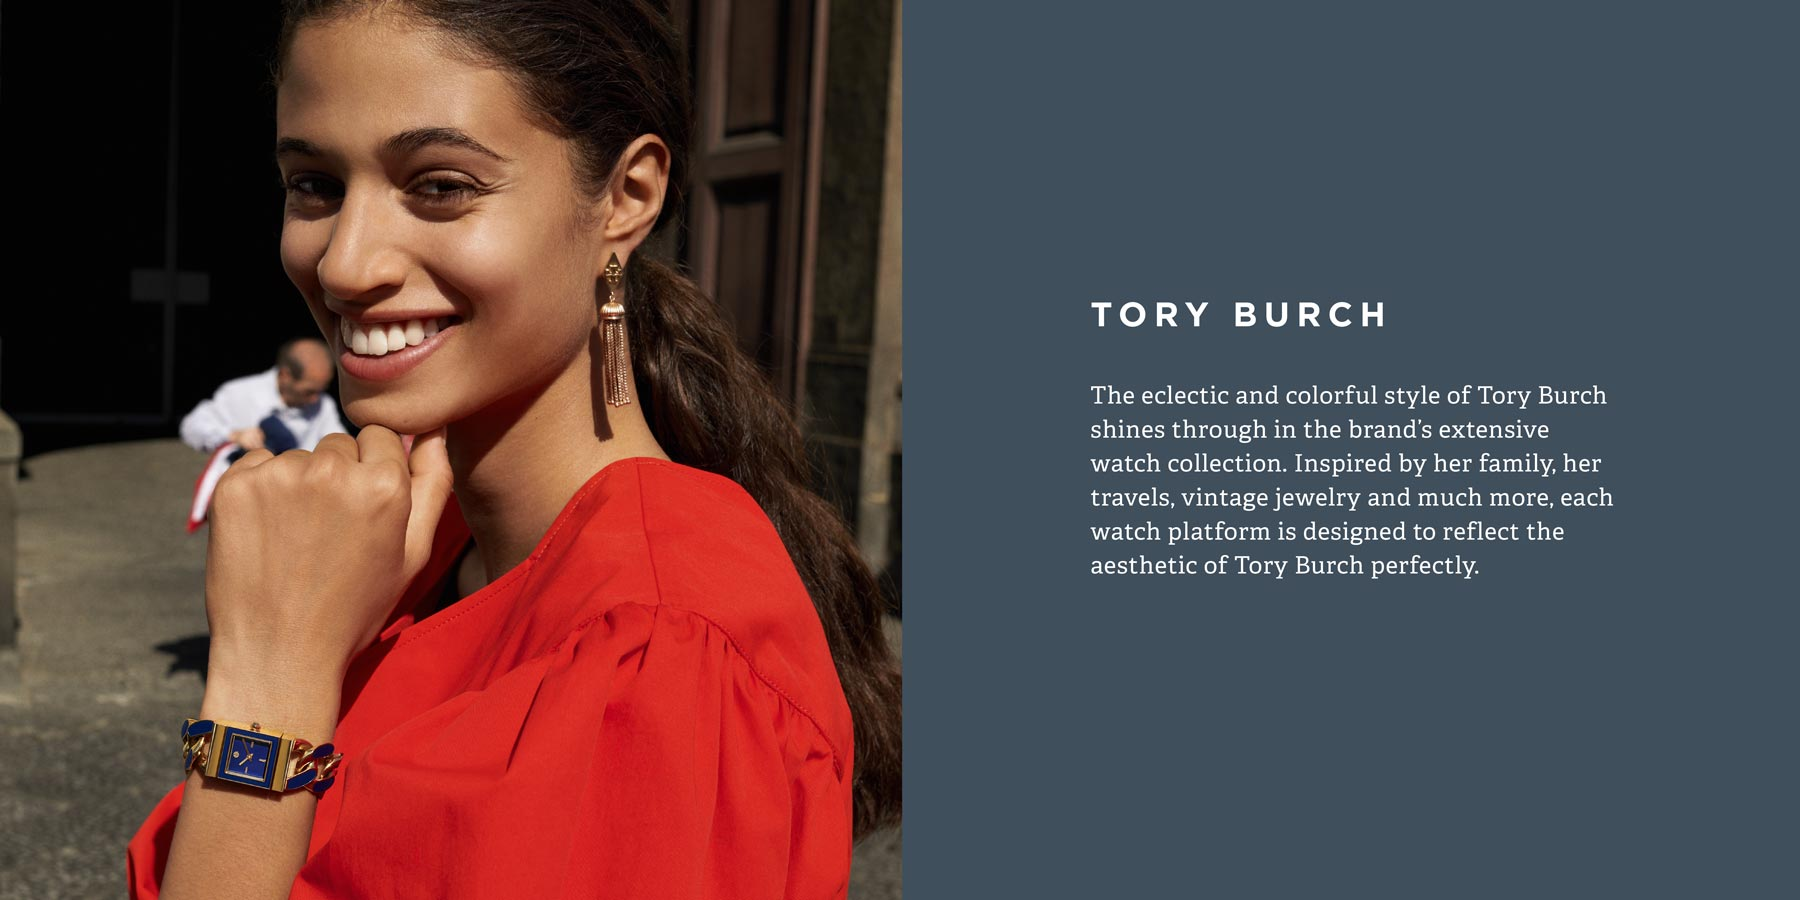 The eclectic and colorful style of Tory Burch shines through in the brand's extensive watch collection.